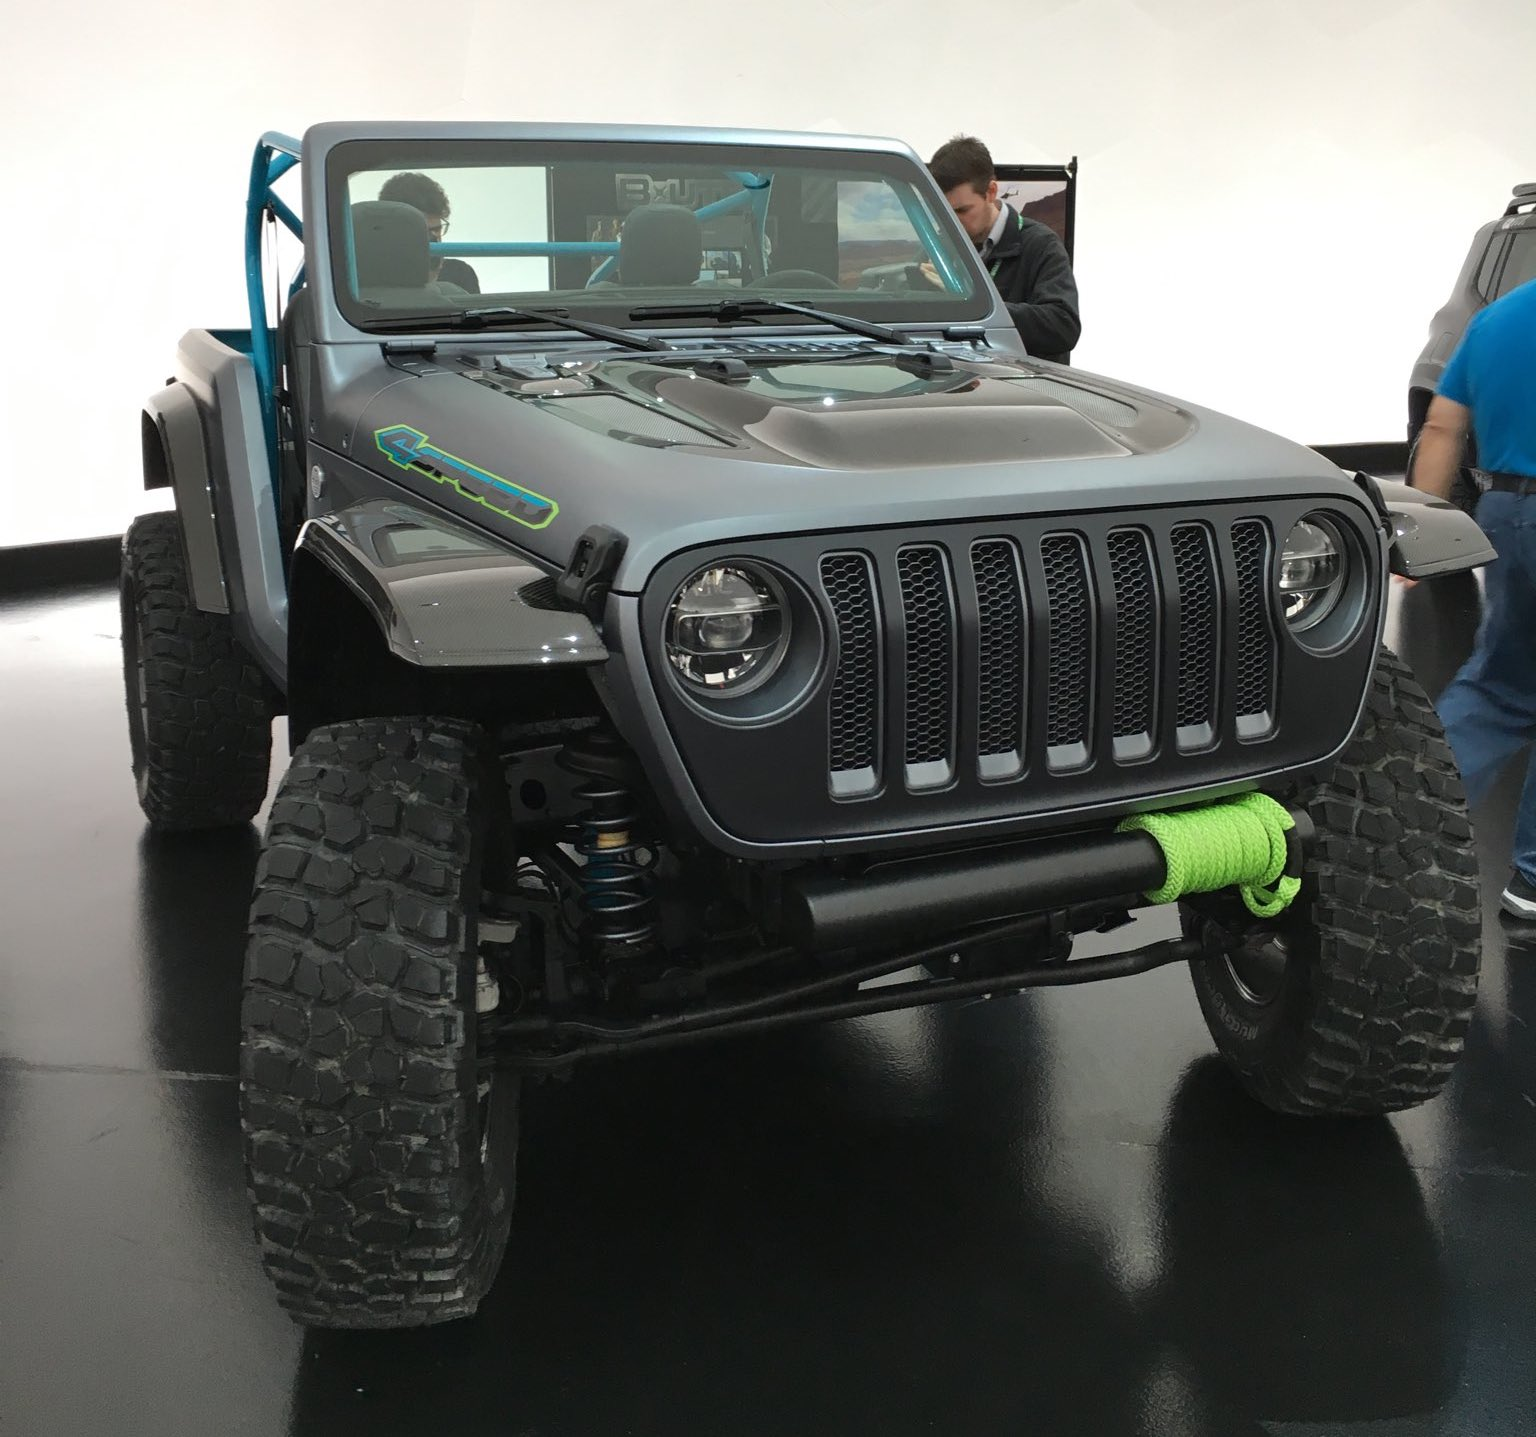 Jeep-4speed-Concept-Wrangler.jpeg